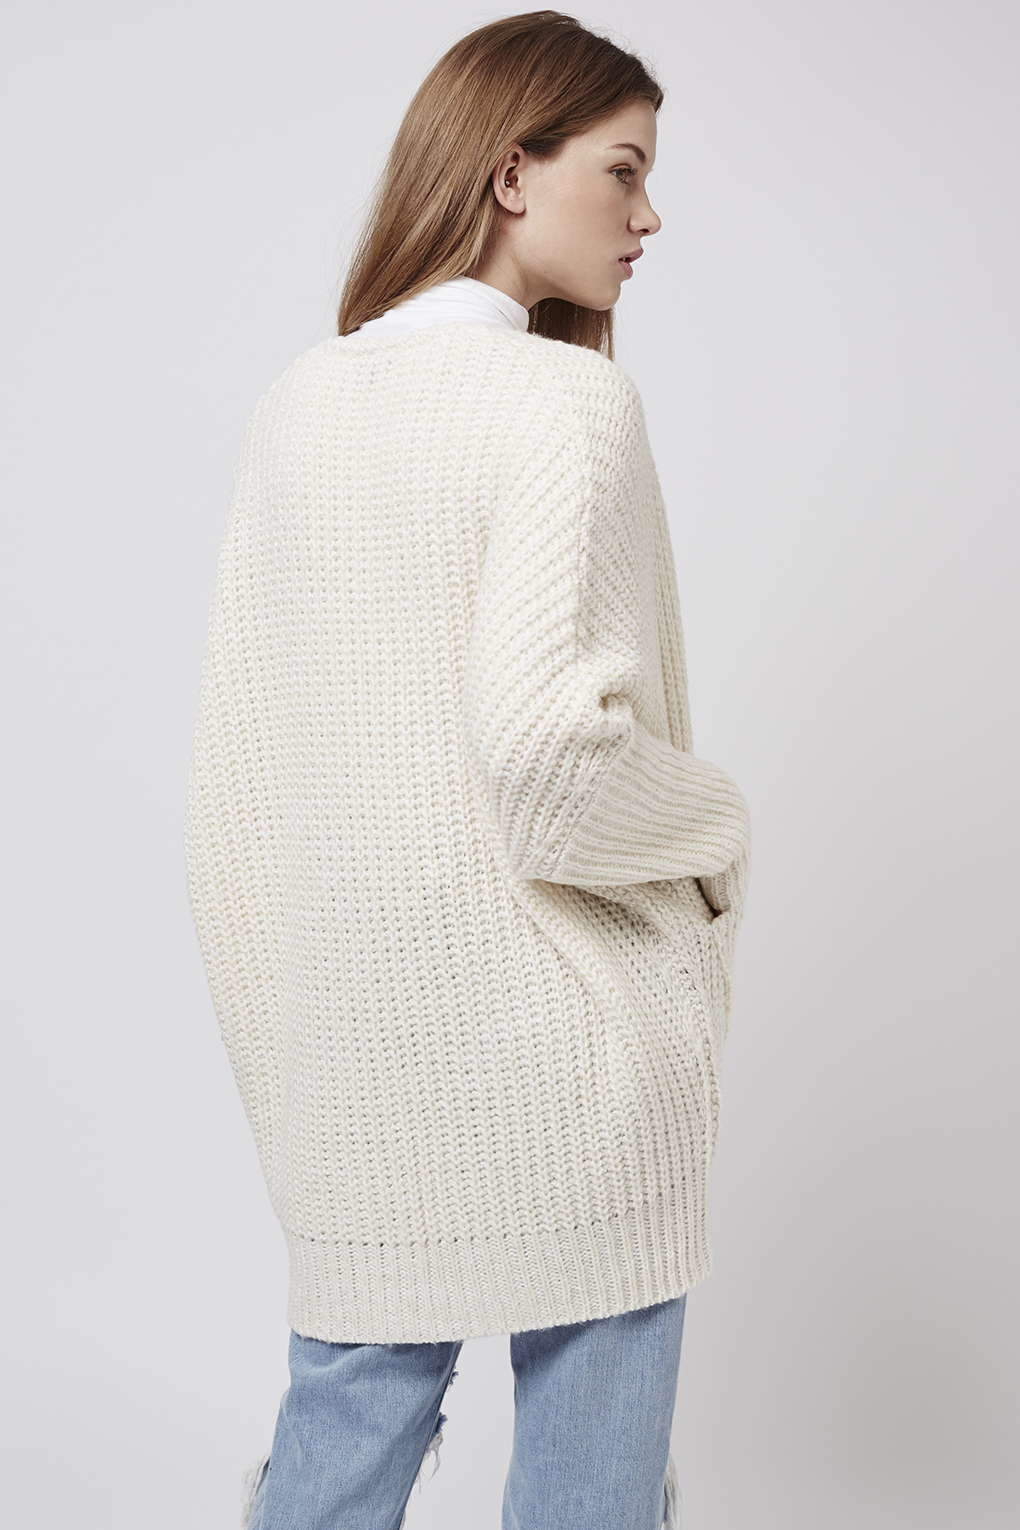 Topshop Cocoon Rib Cardigan in Natural | Lyst